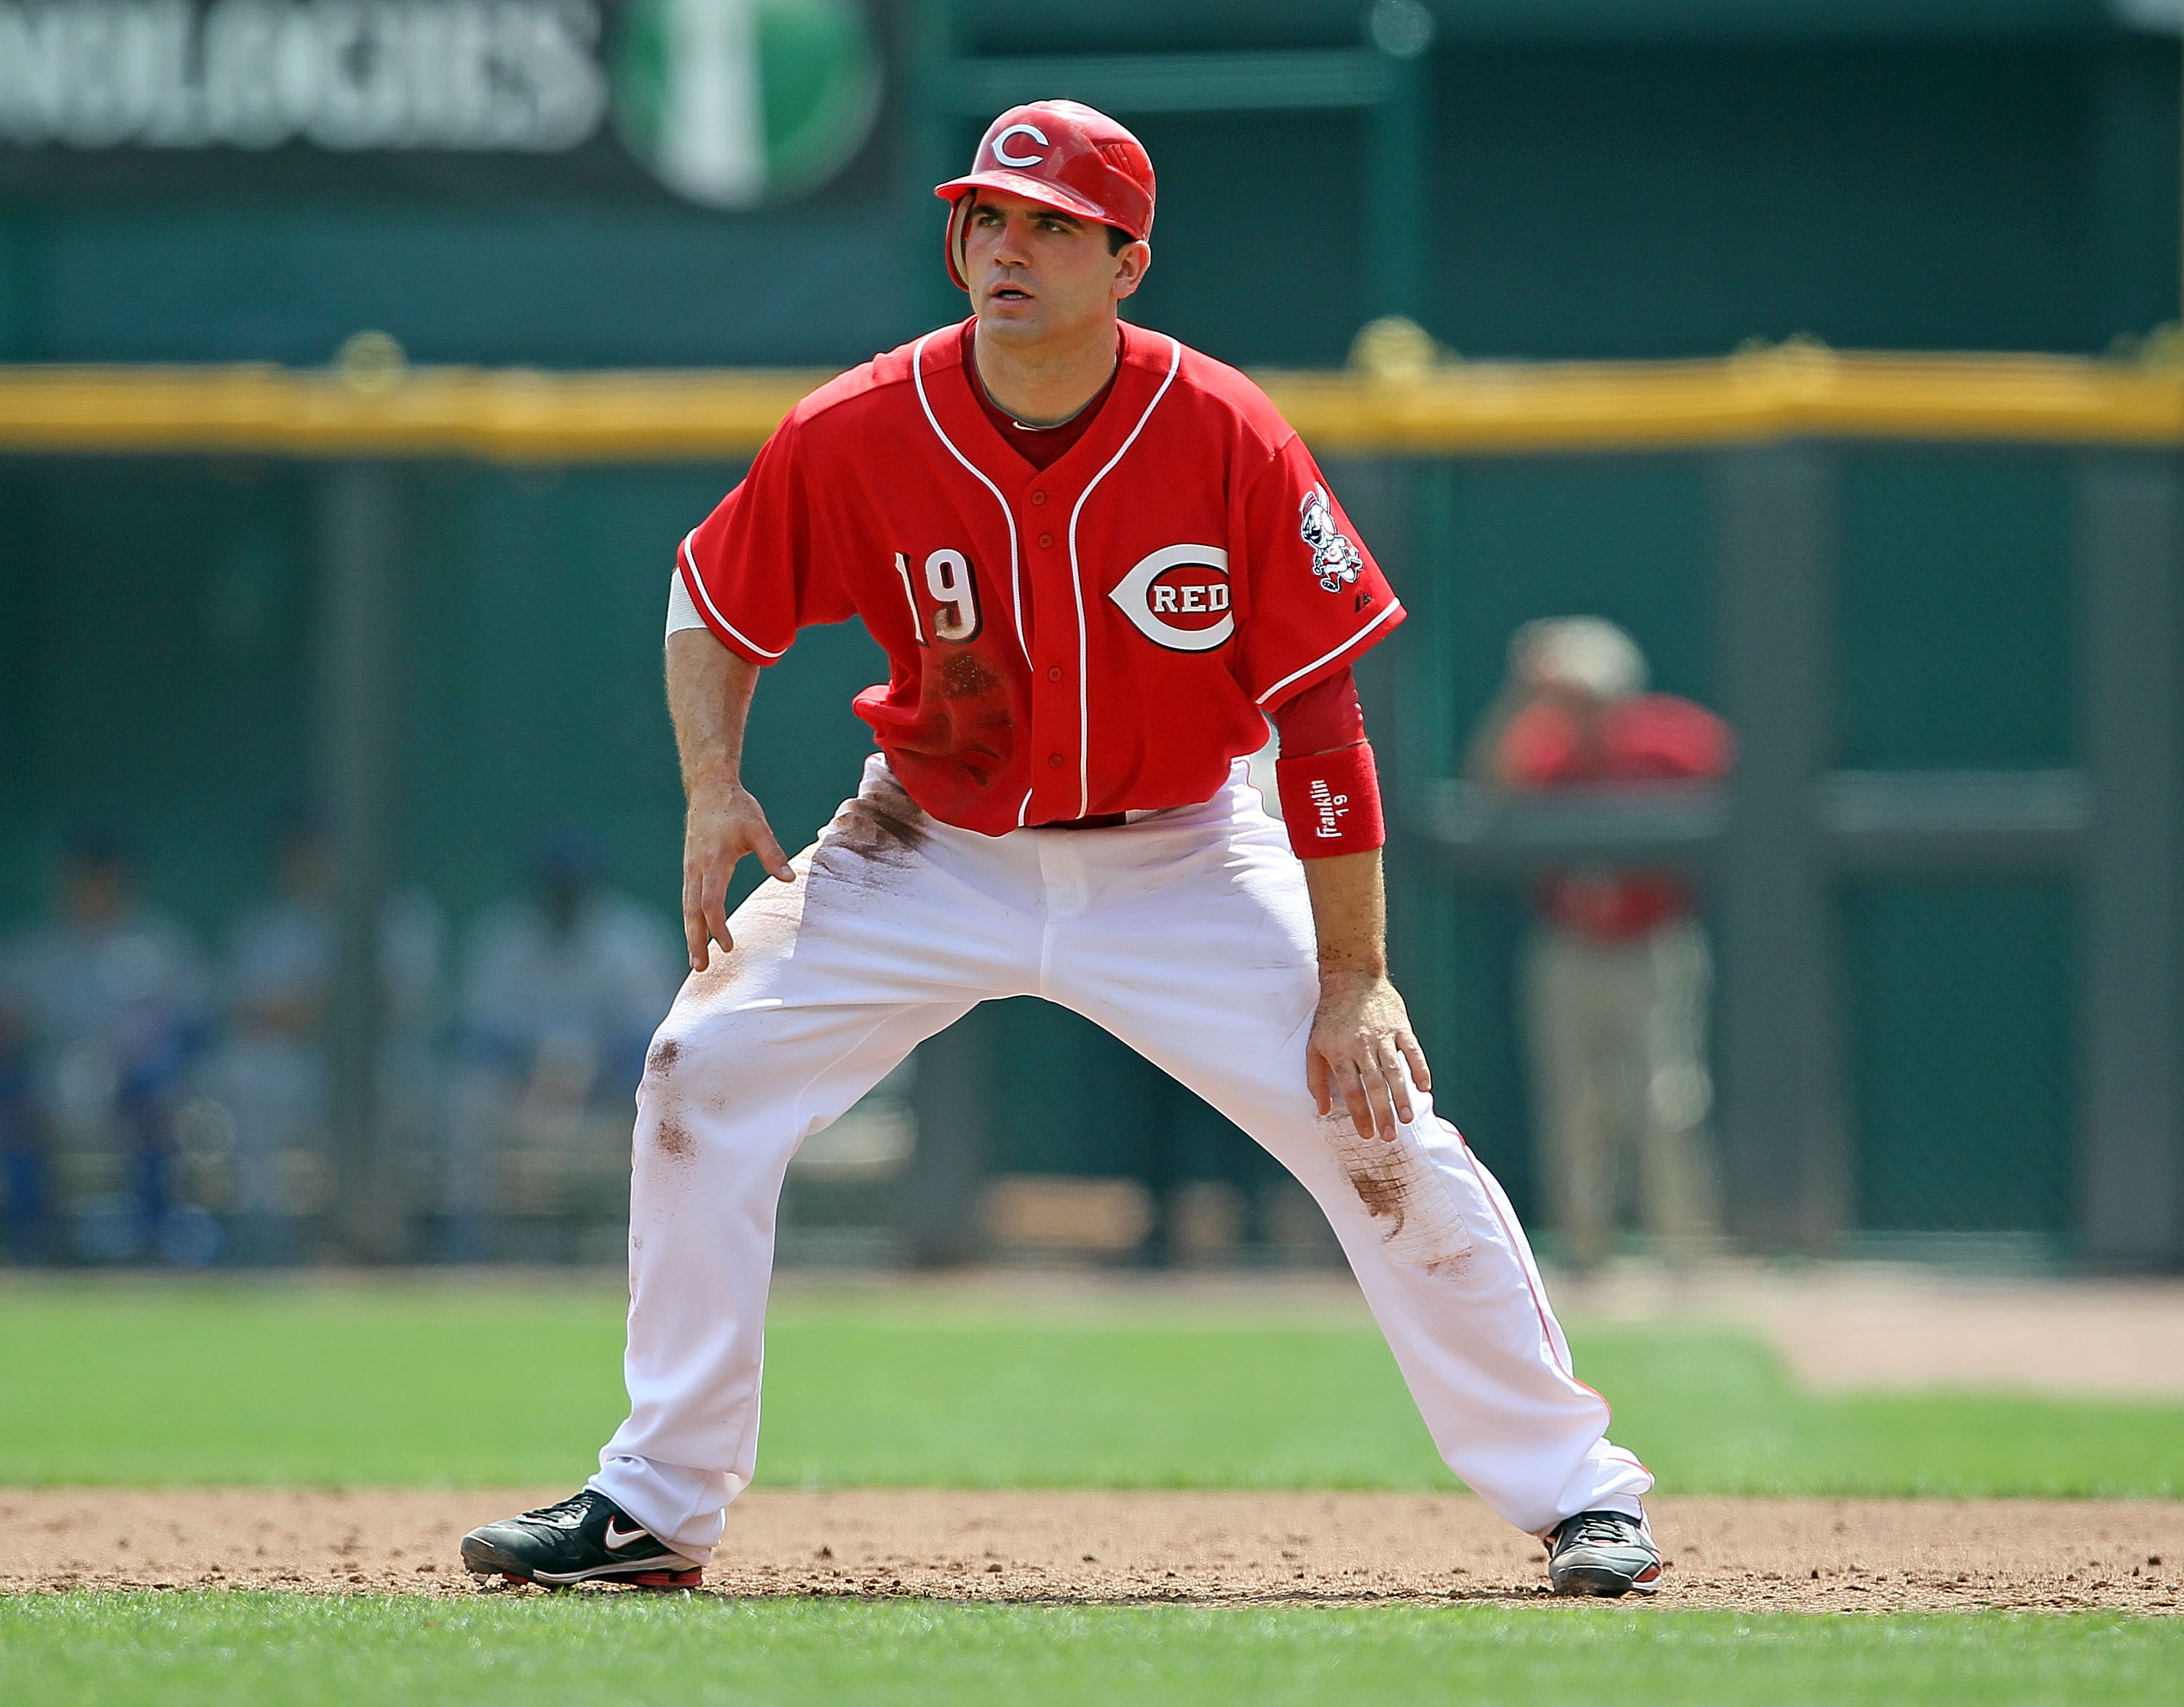 CINCINNATI - AUGUST 29:  Joey Votto #19 of the Cincinnati Reds leads off of first base during the game against the Chicago Cubs at Great American Ball Park on August 29, 2010 in Cincinnati, Ohio.  (Photo by Andy Lyons/Getty Images)